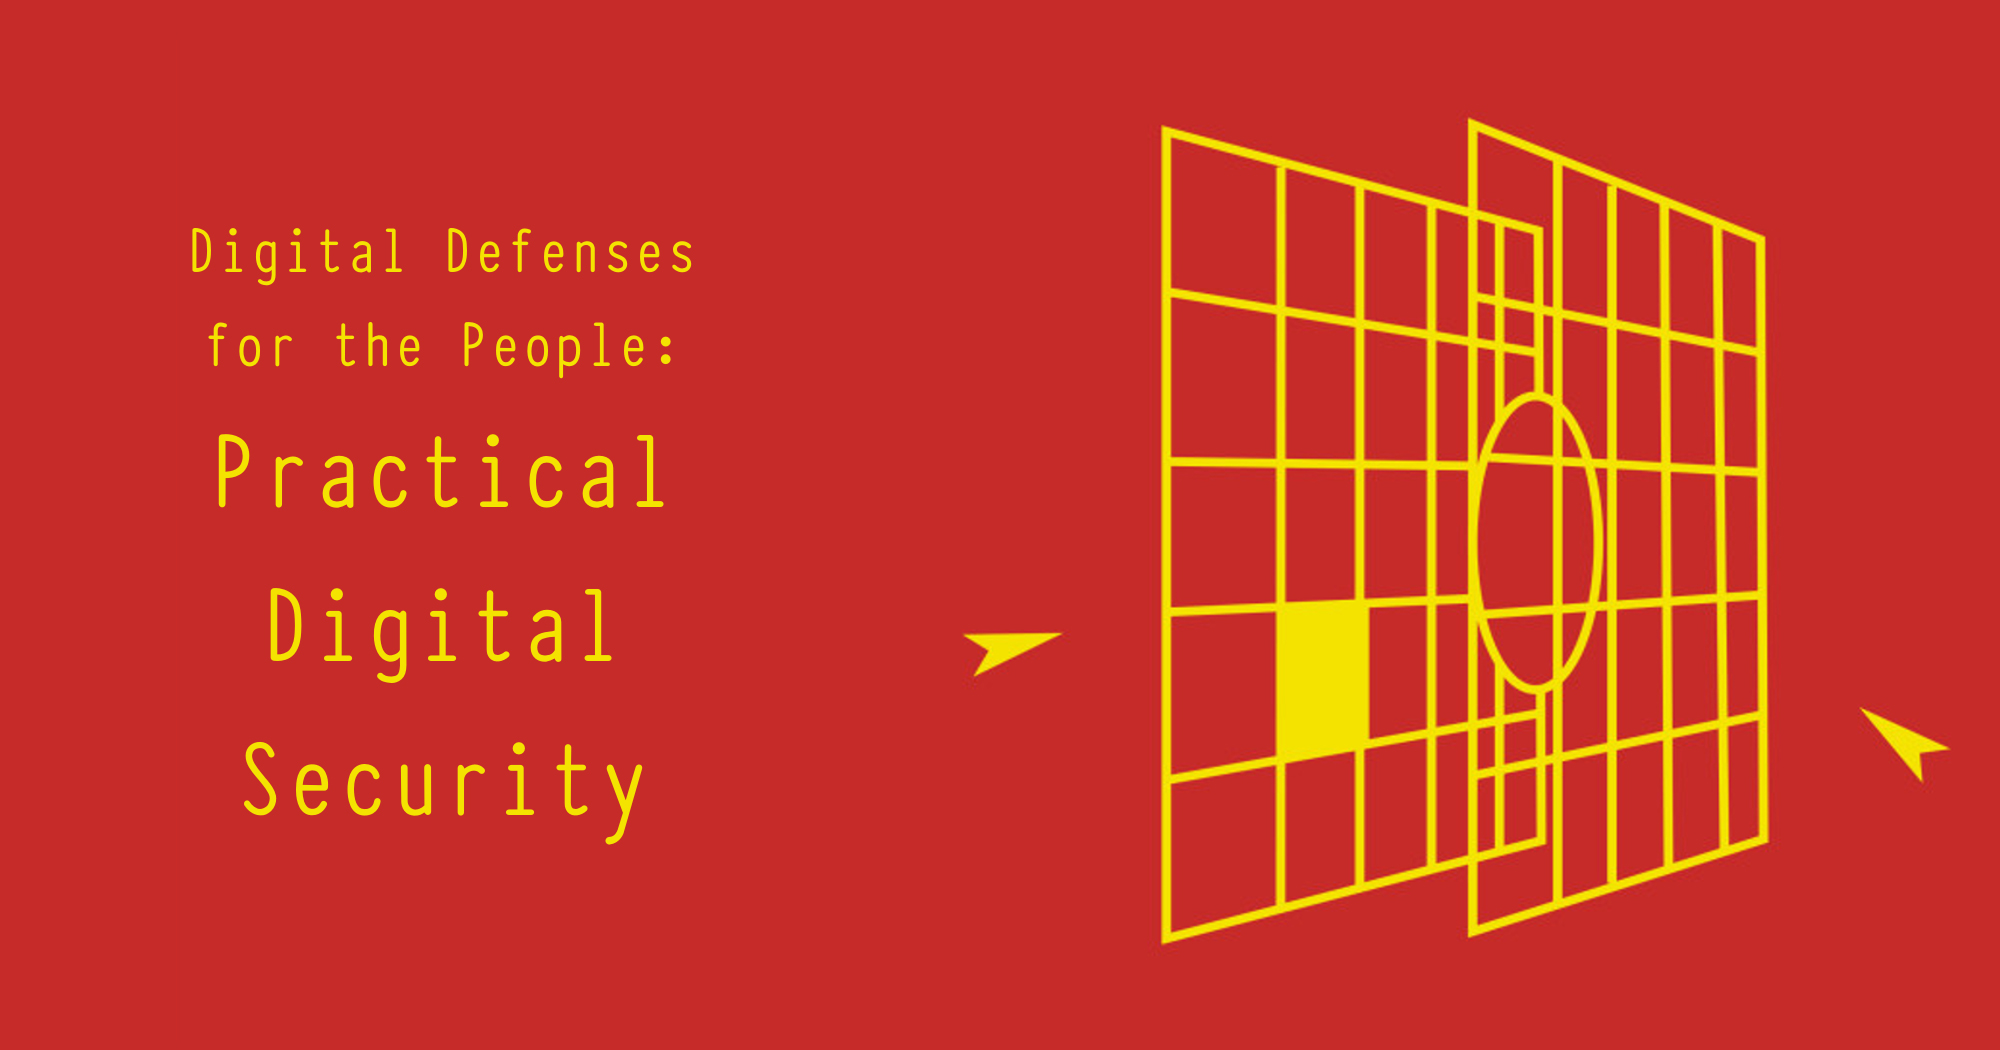 Digital Defenses for the People: Practical Digital Security at Brooklyn Community Pride Center